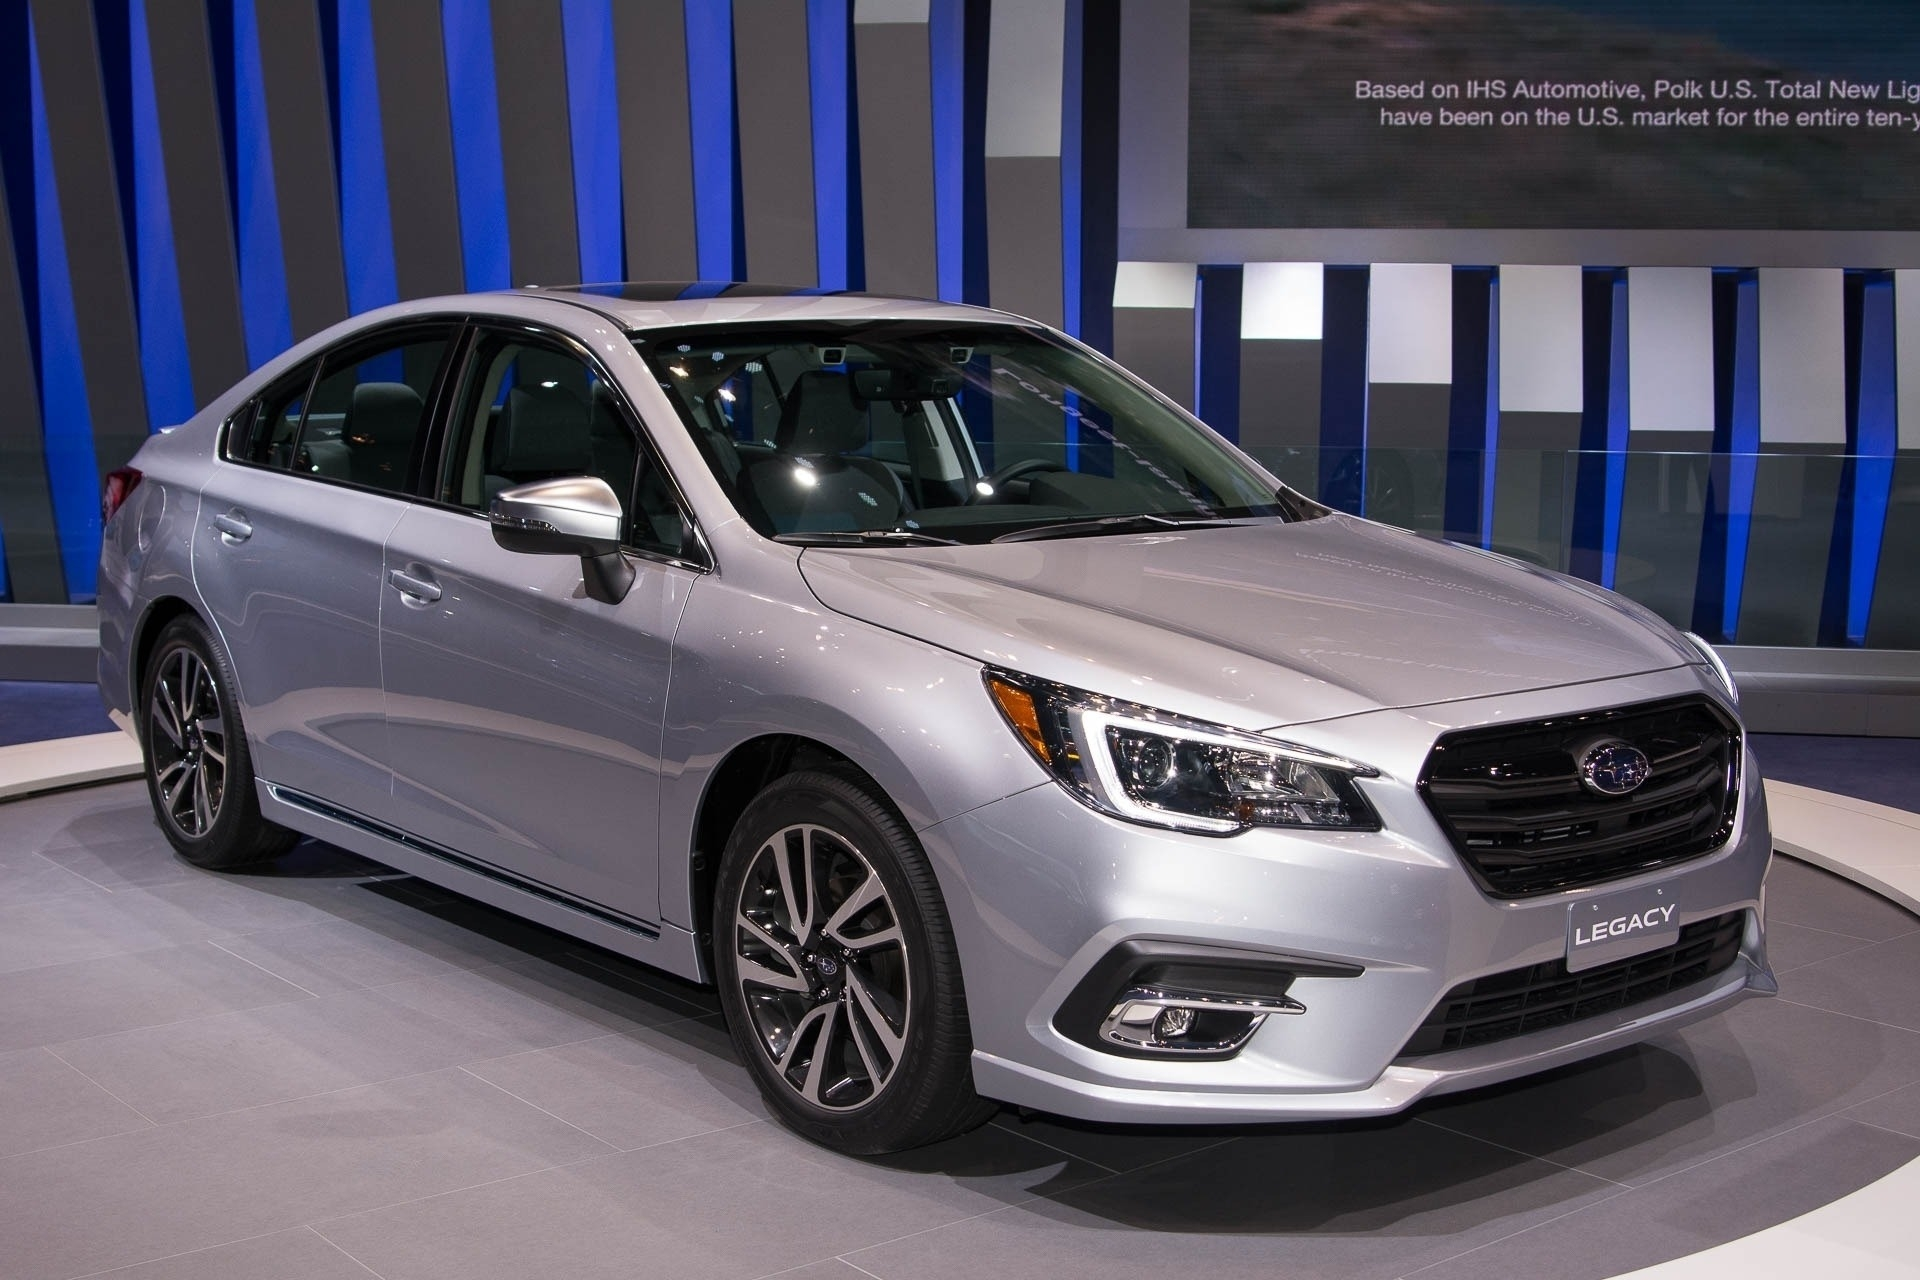 68 The Best 2019 Subaru Legacy Turbo Gt Rumors